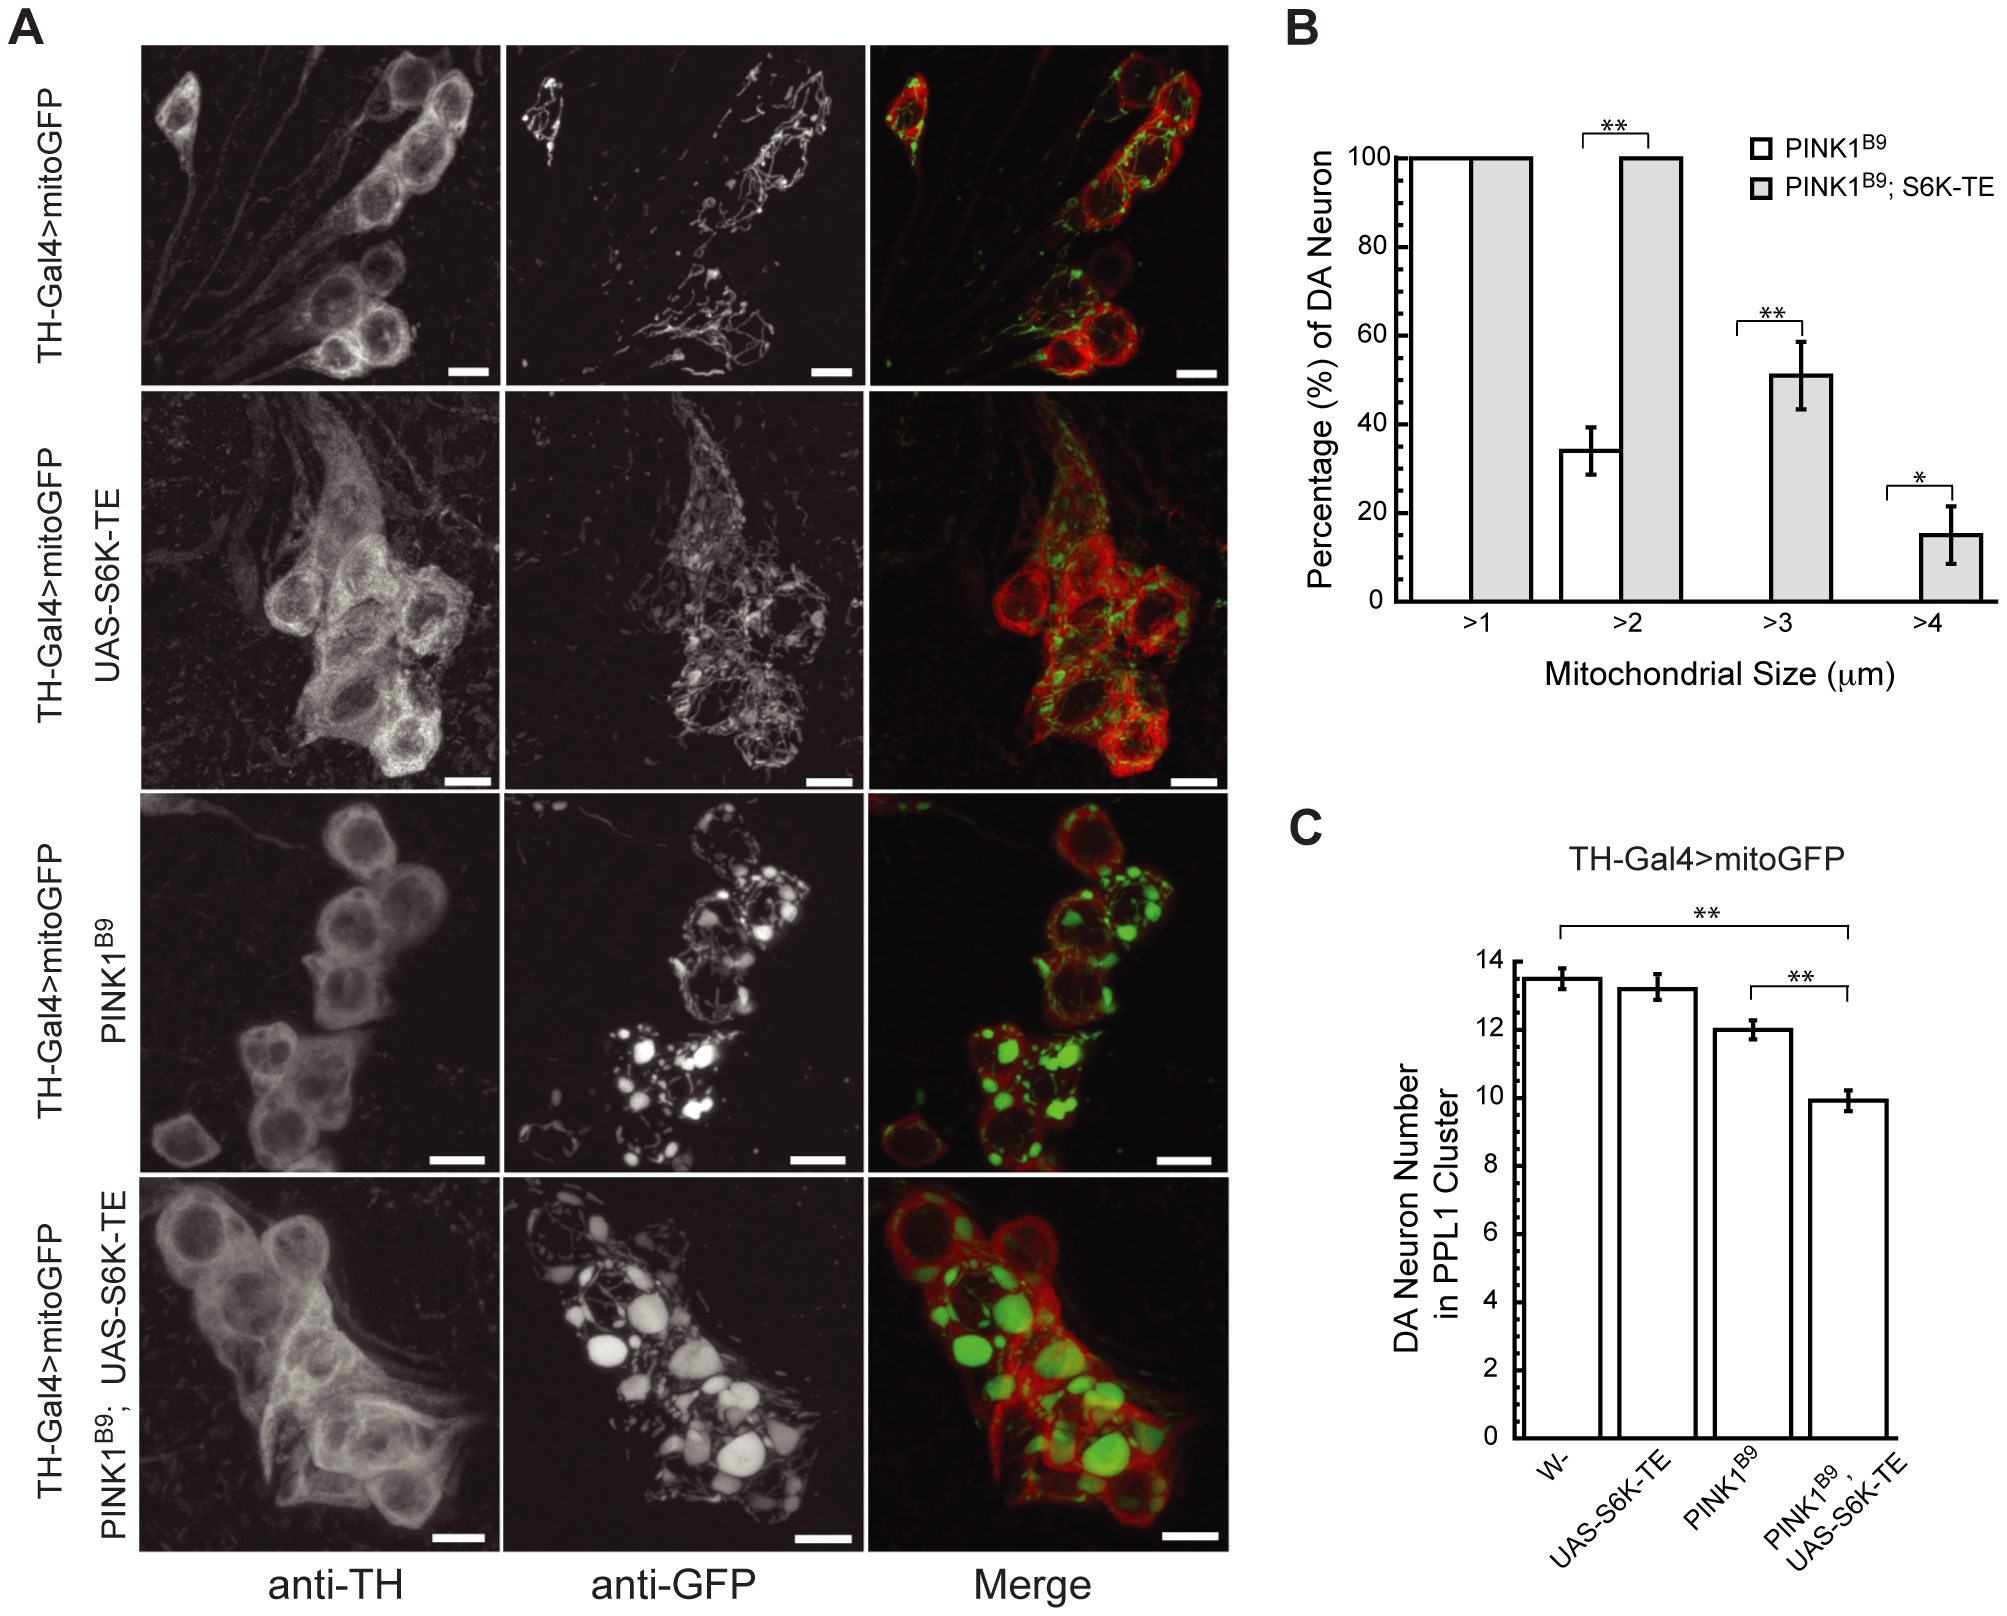 Constitutively active S6K increases mitochondrial aggregation and DA neuron loss in <i>PINK1</i> mutants.